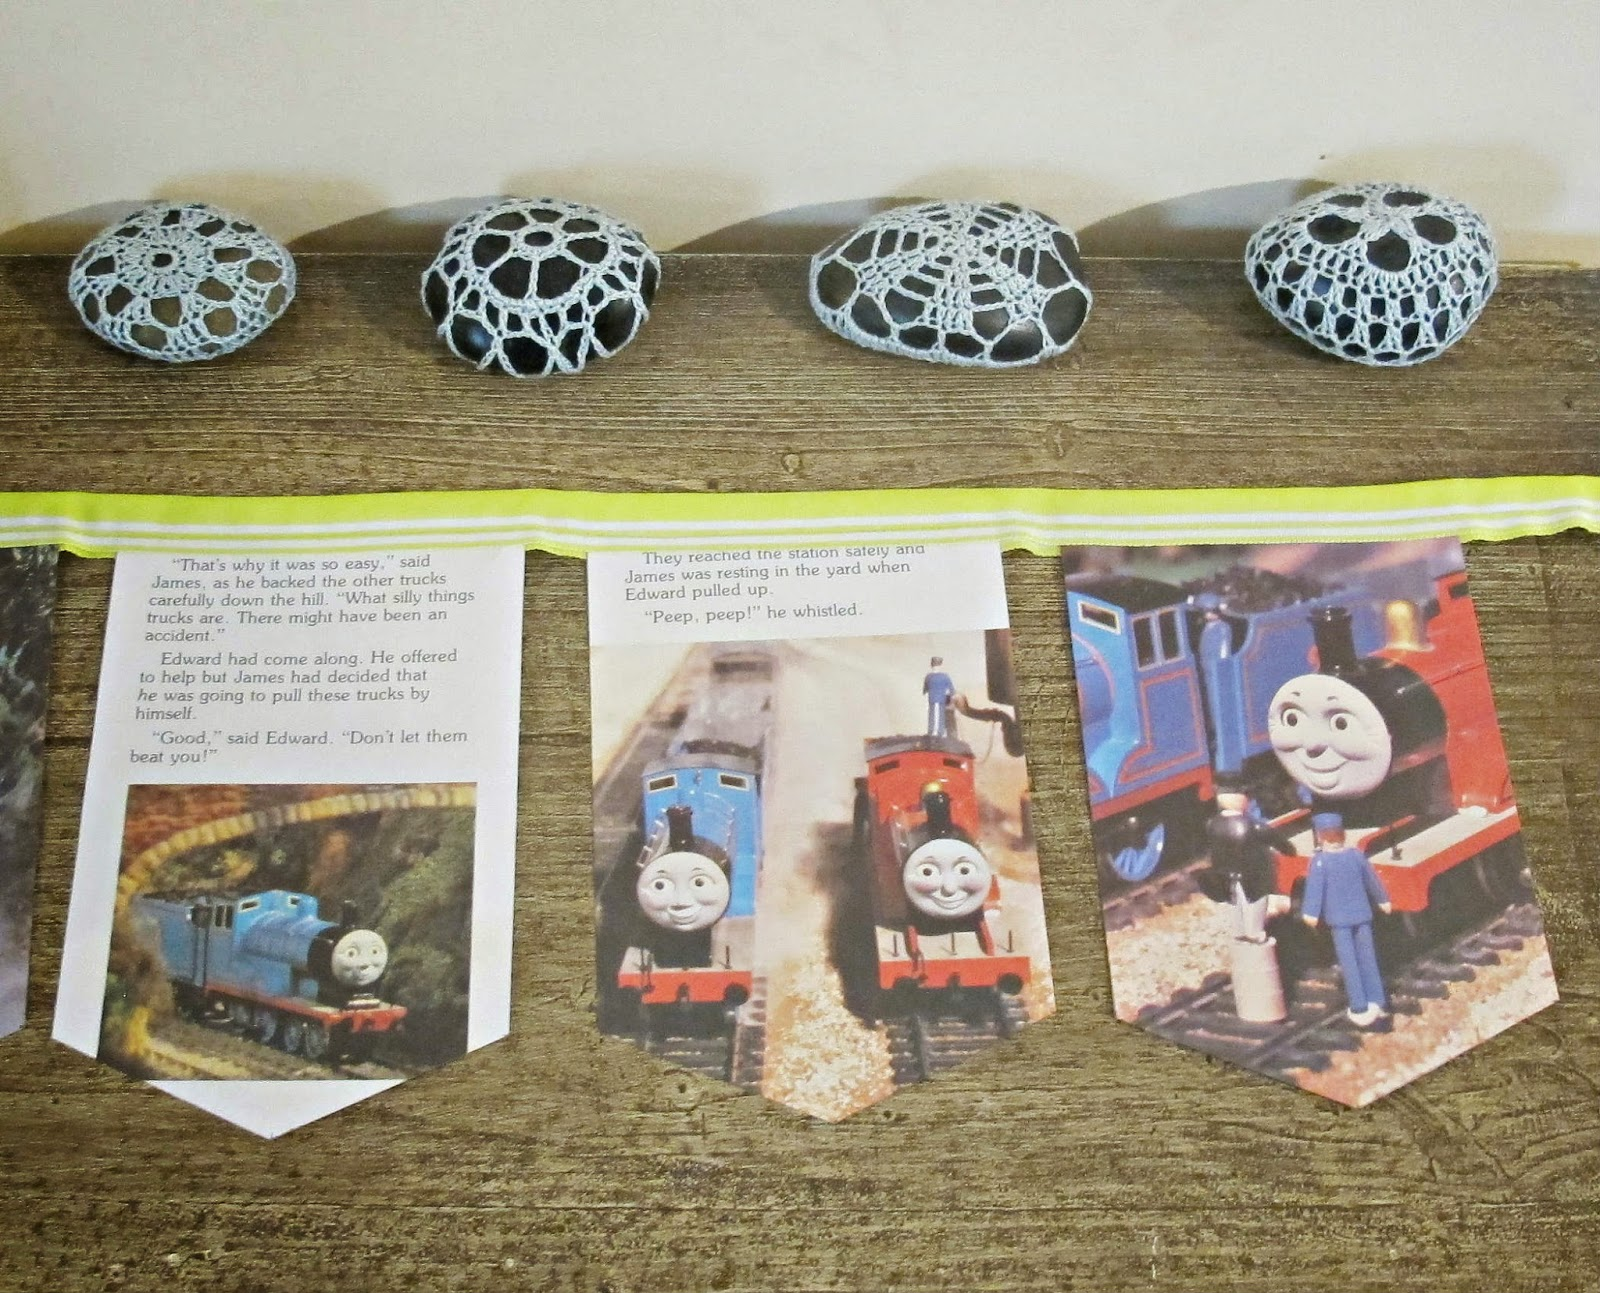 image thomas the tank engine bunting james and the troublesome trucks domum vindemia for sale etsy madeit children lime green boys